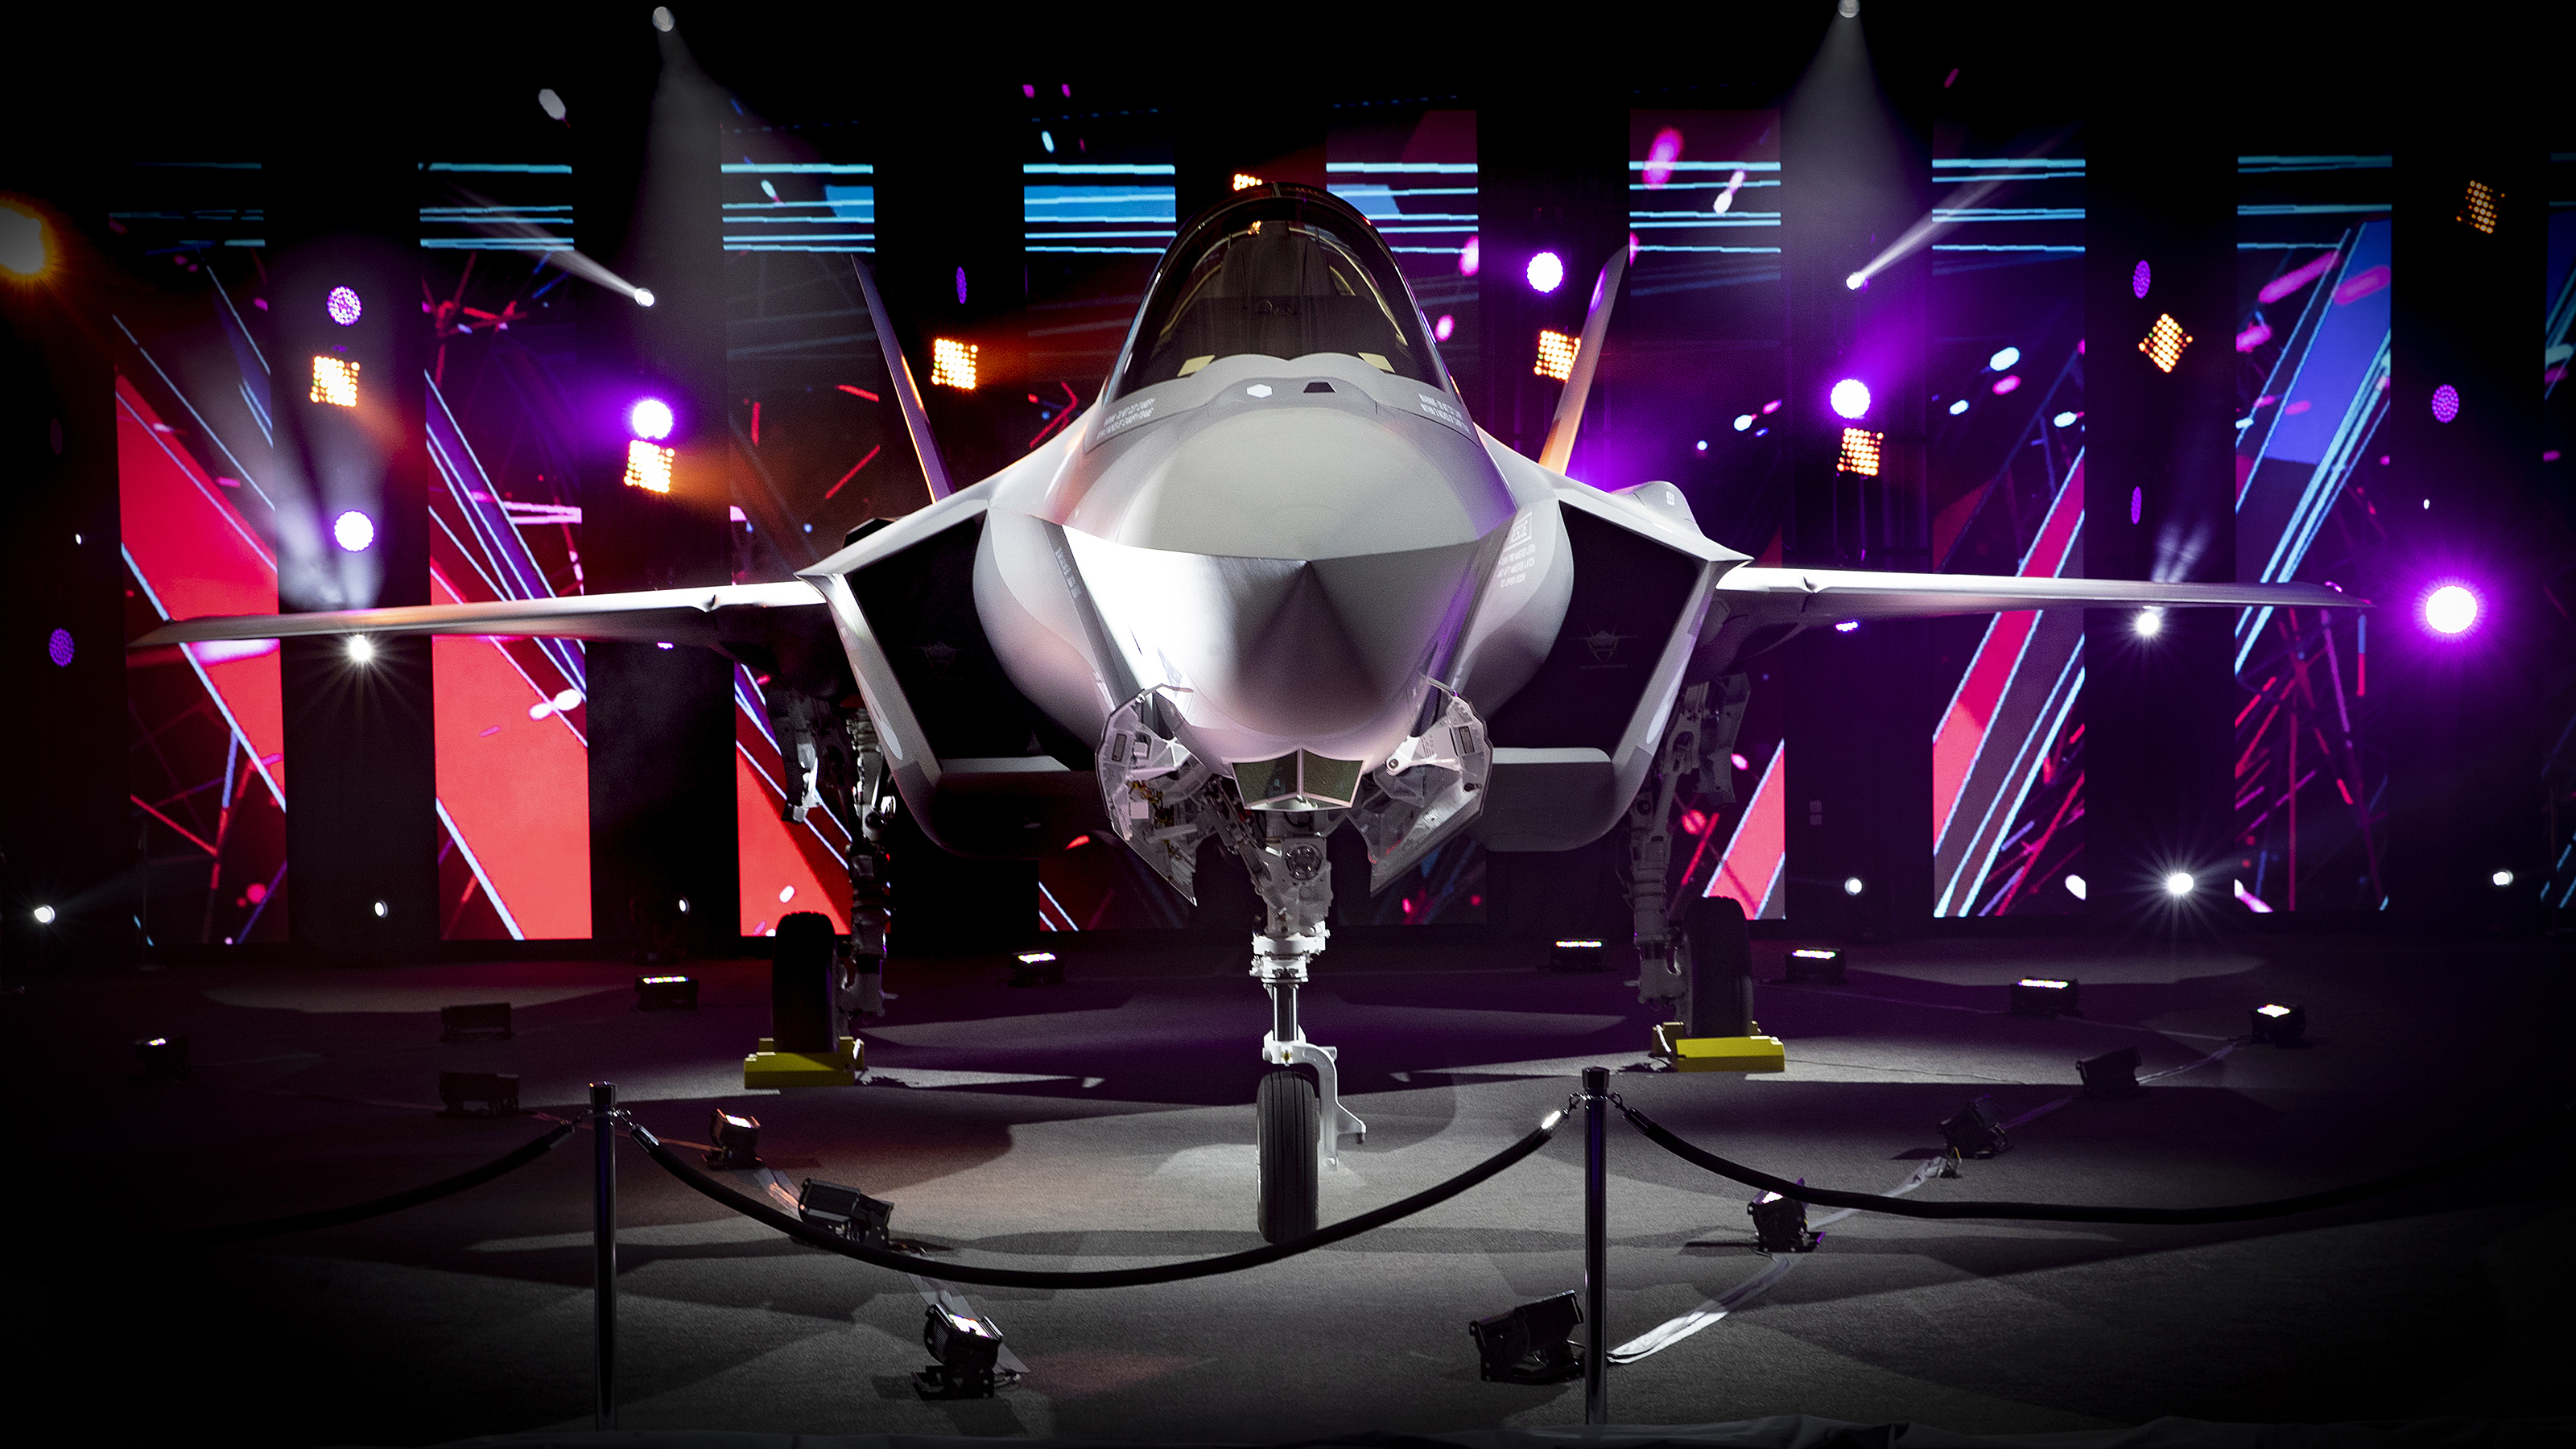 Photo Caption 1: The Netherlands' first operational F-35 unveiled at the roll out ceremony at Lockheed Martin's facility in Fort Worth, Texas